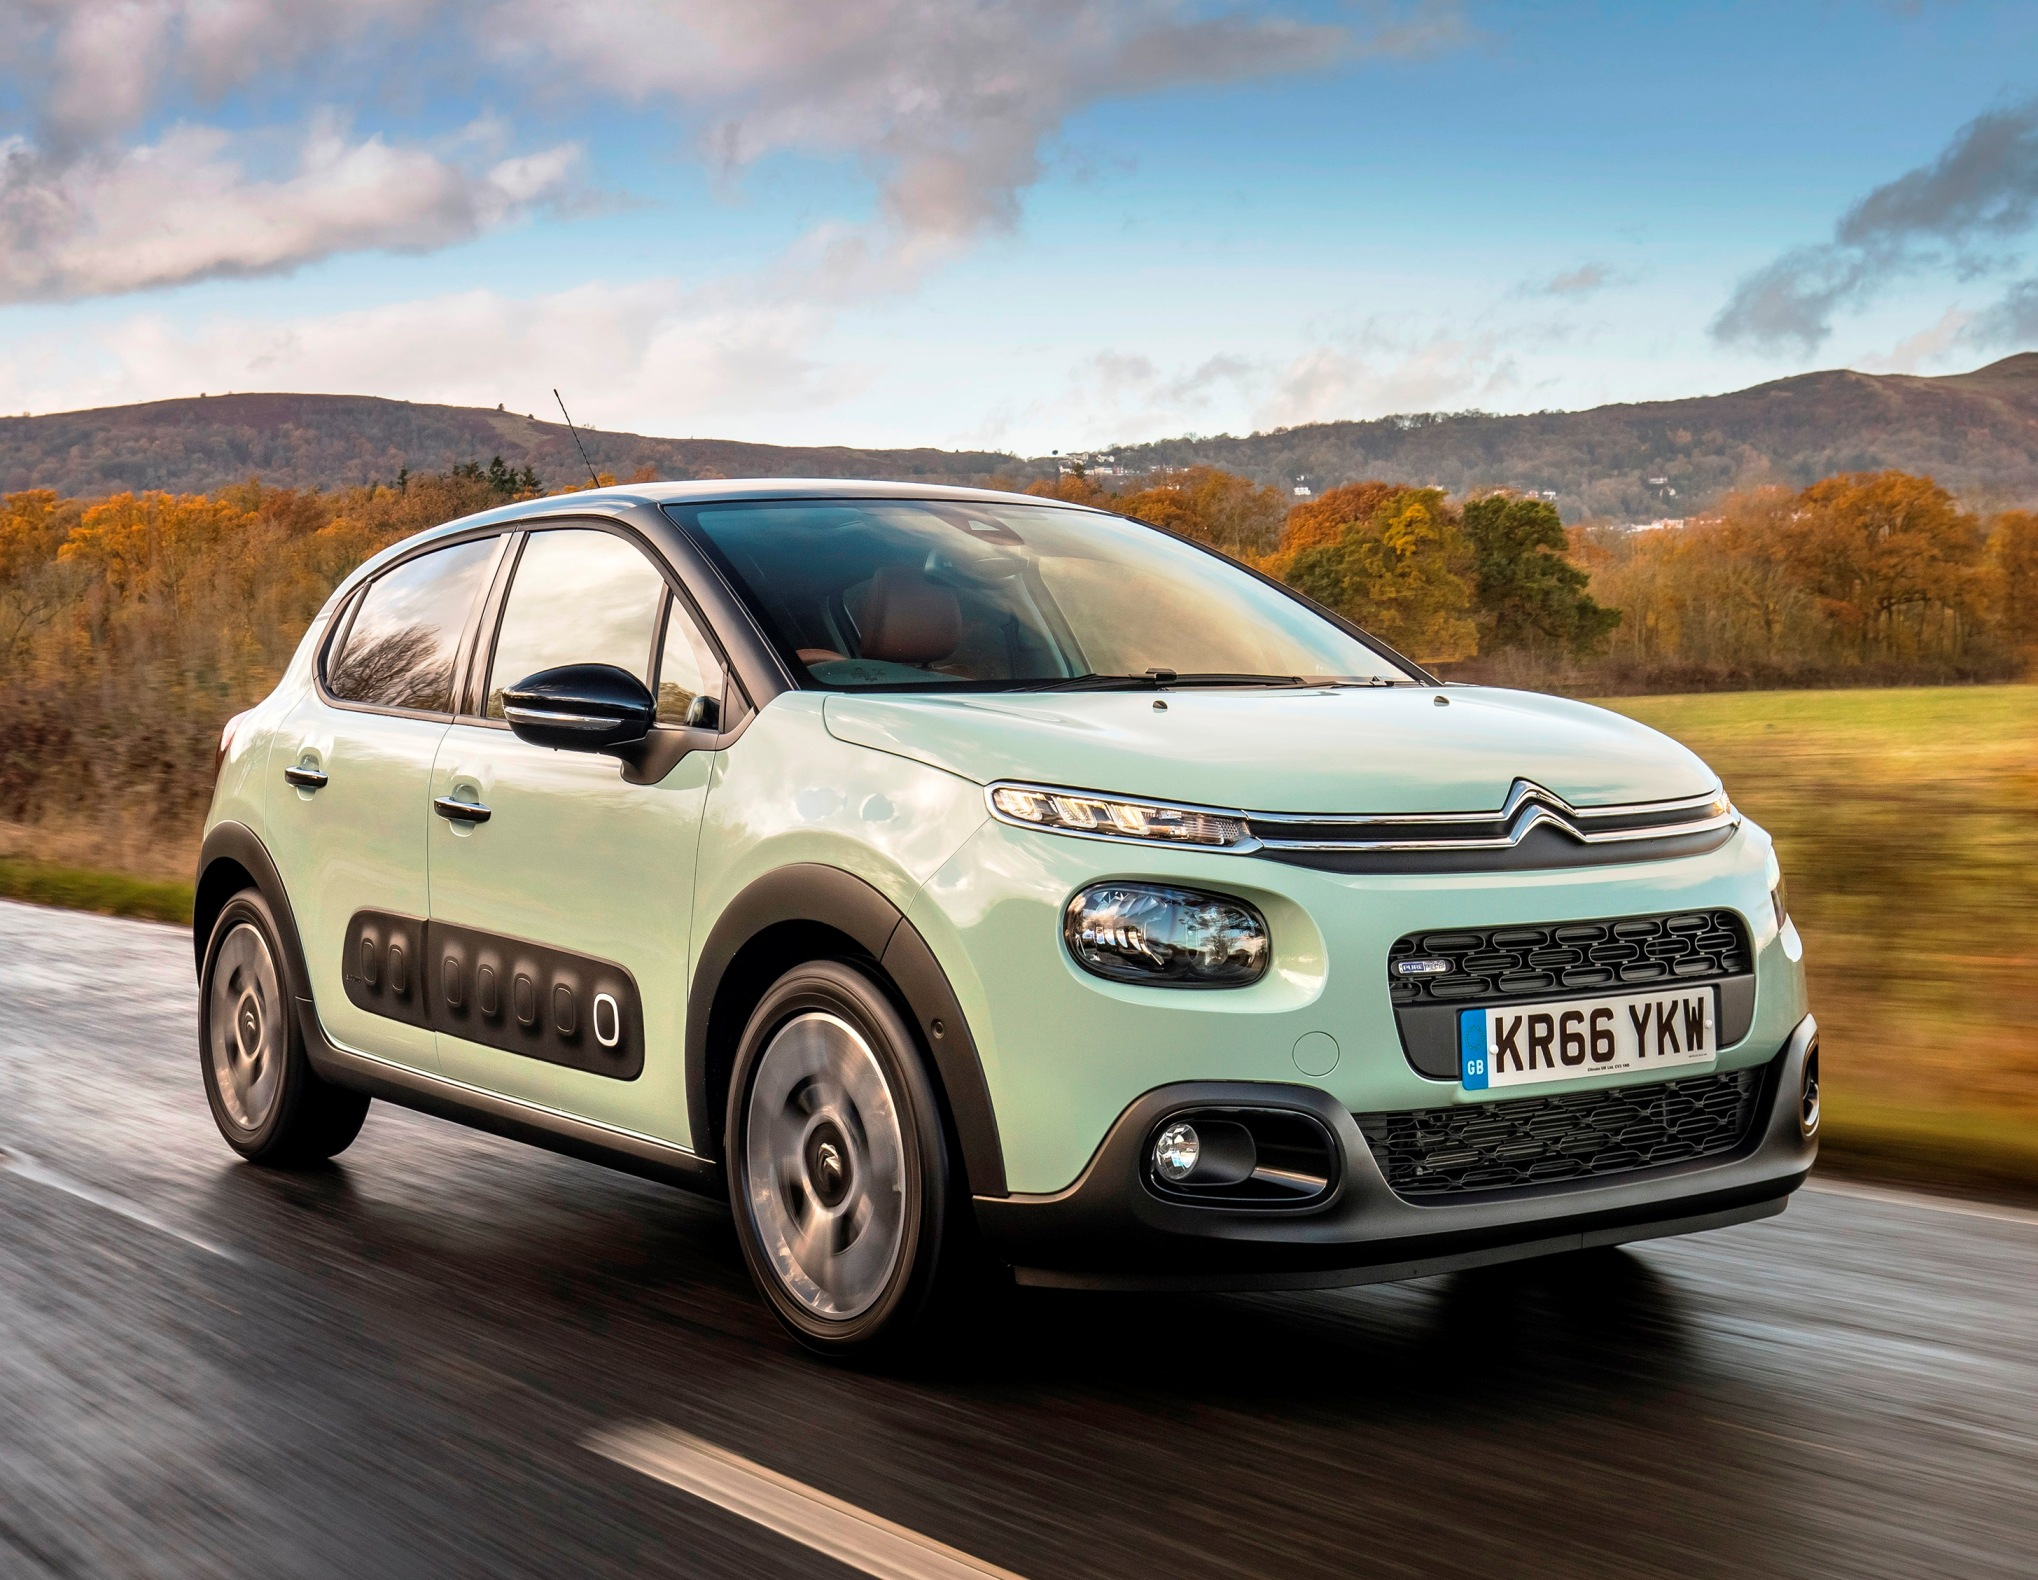 citroen-c3-side-front-acton